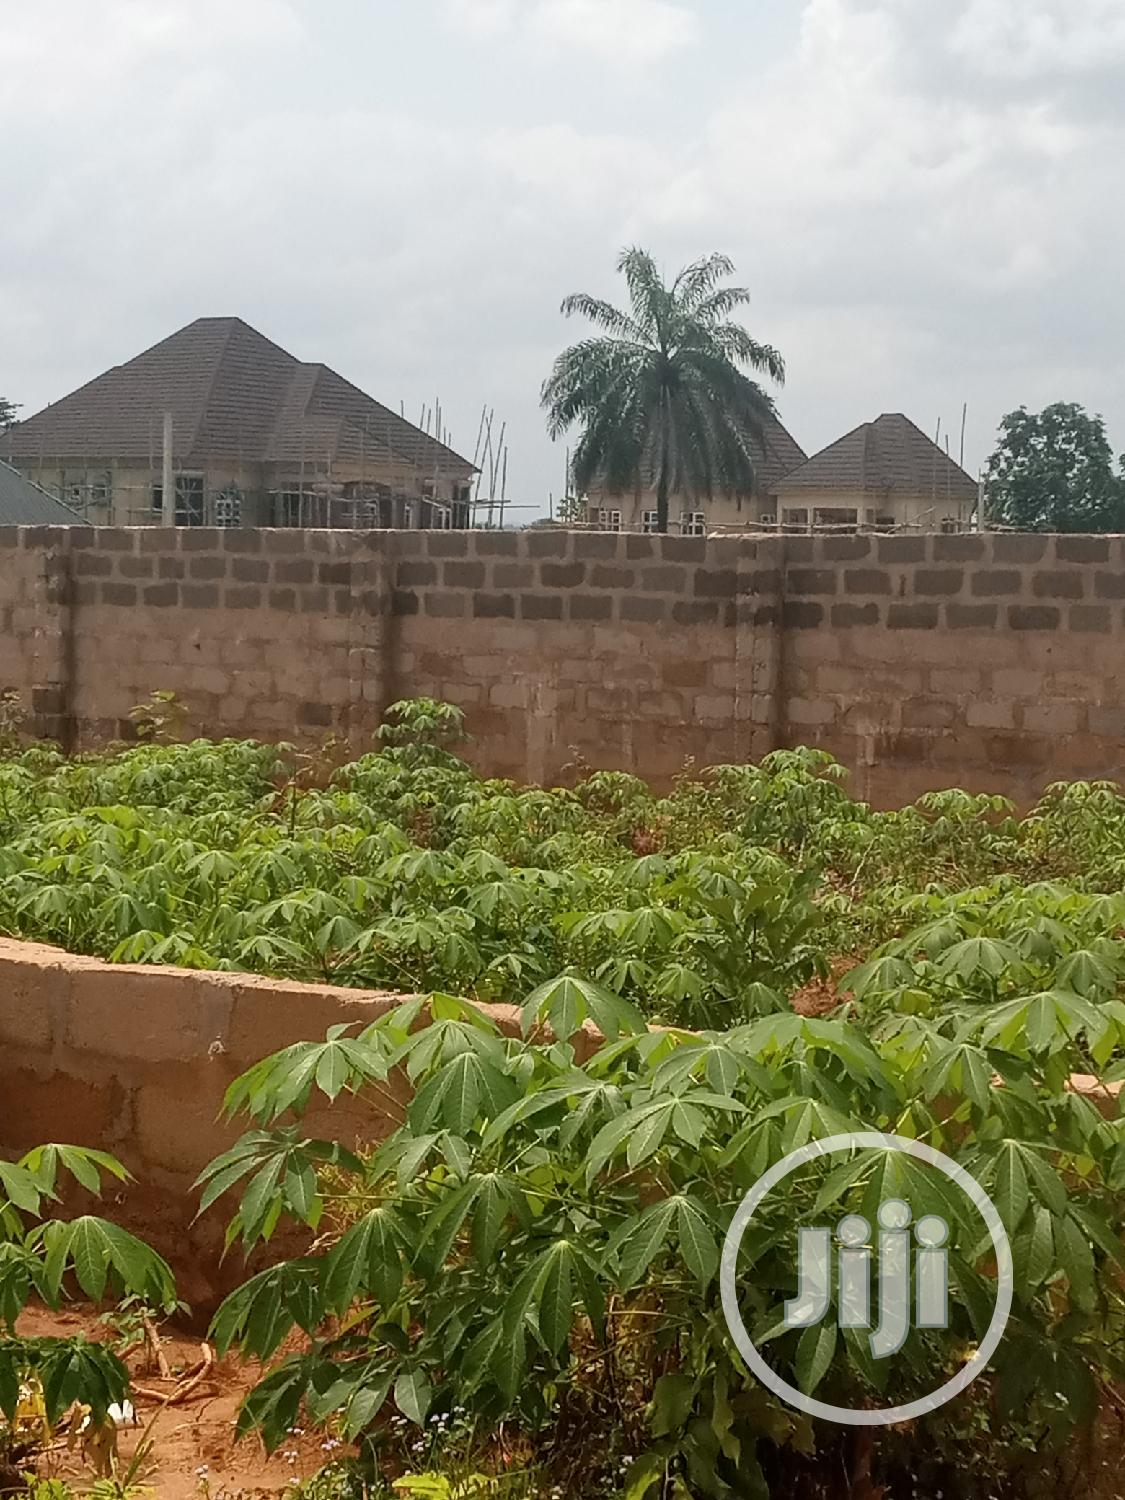 1 Plot Of Land In Isu Awka, Anambra State For Sale